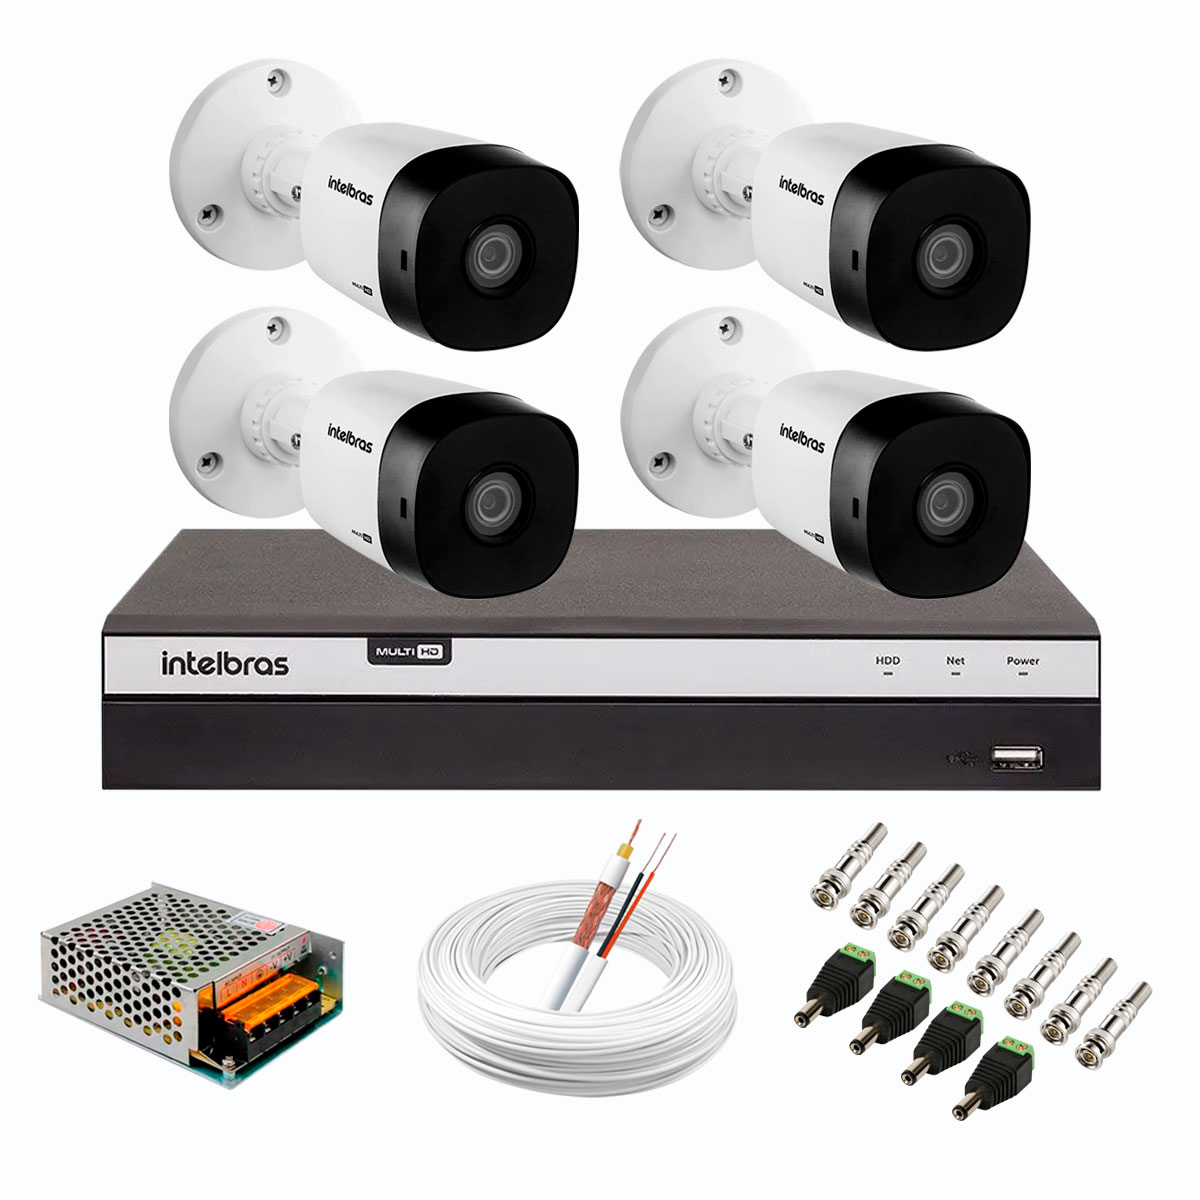 kit-4-cameras-de-seguranca-full-hd-intelbras-vhd-1220-b-g6-dvr-intelbras-04-canais-full-hd-mhdx-3104-acessorios